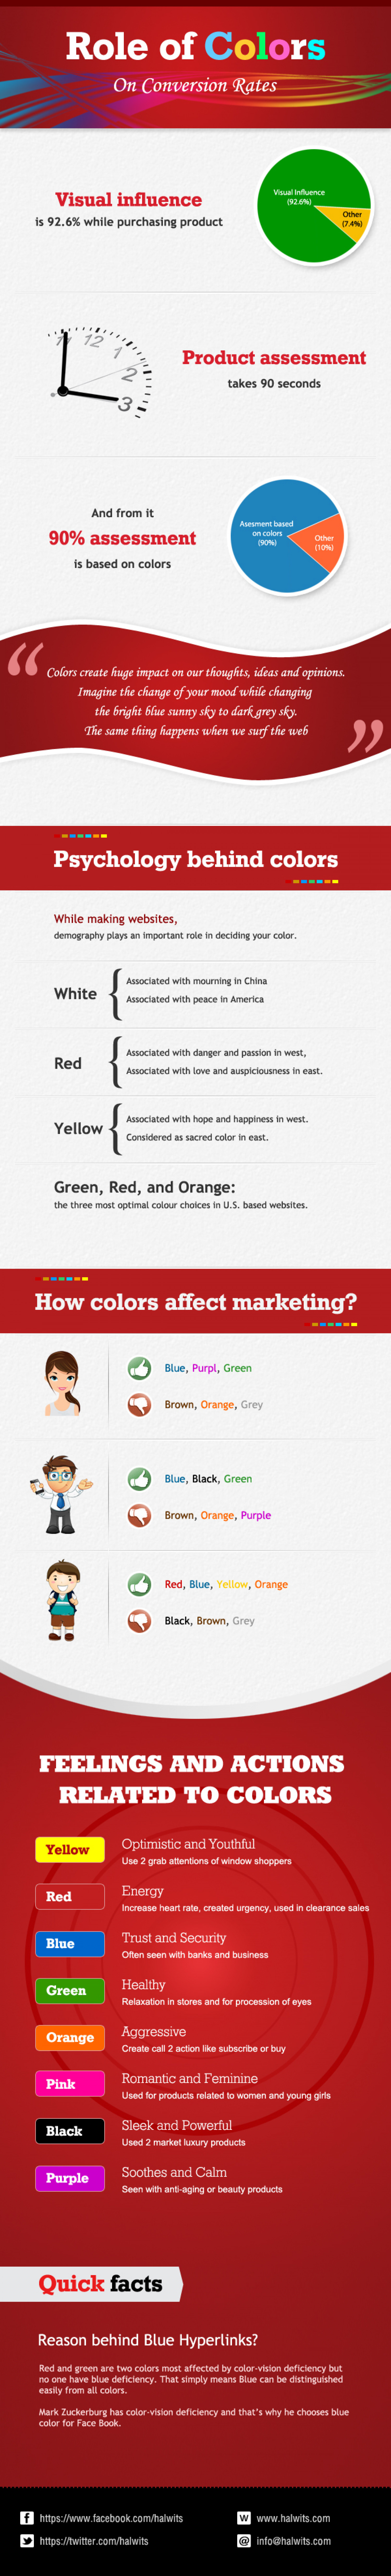 Role of colors on conversion rates Infographic